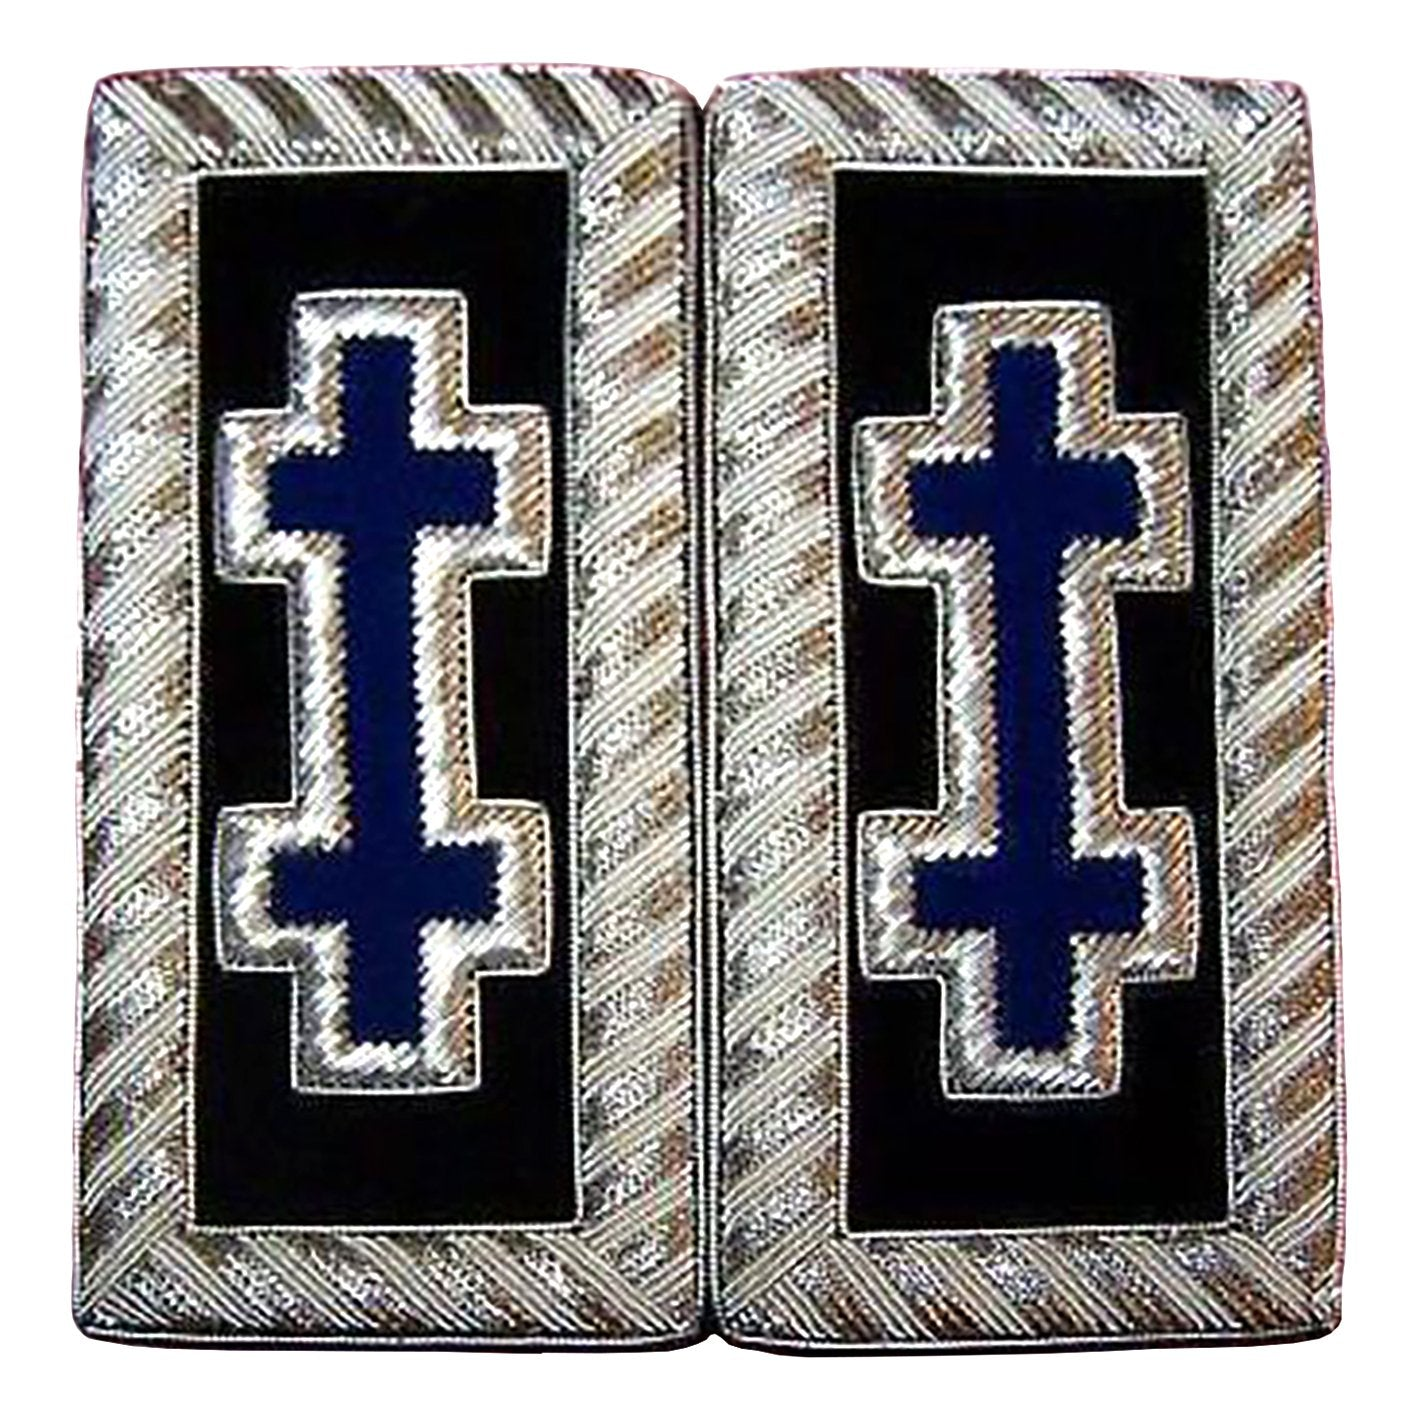 Knights Templar Shoulder Boards - Bullion Embroidery - Bricks Masons